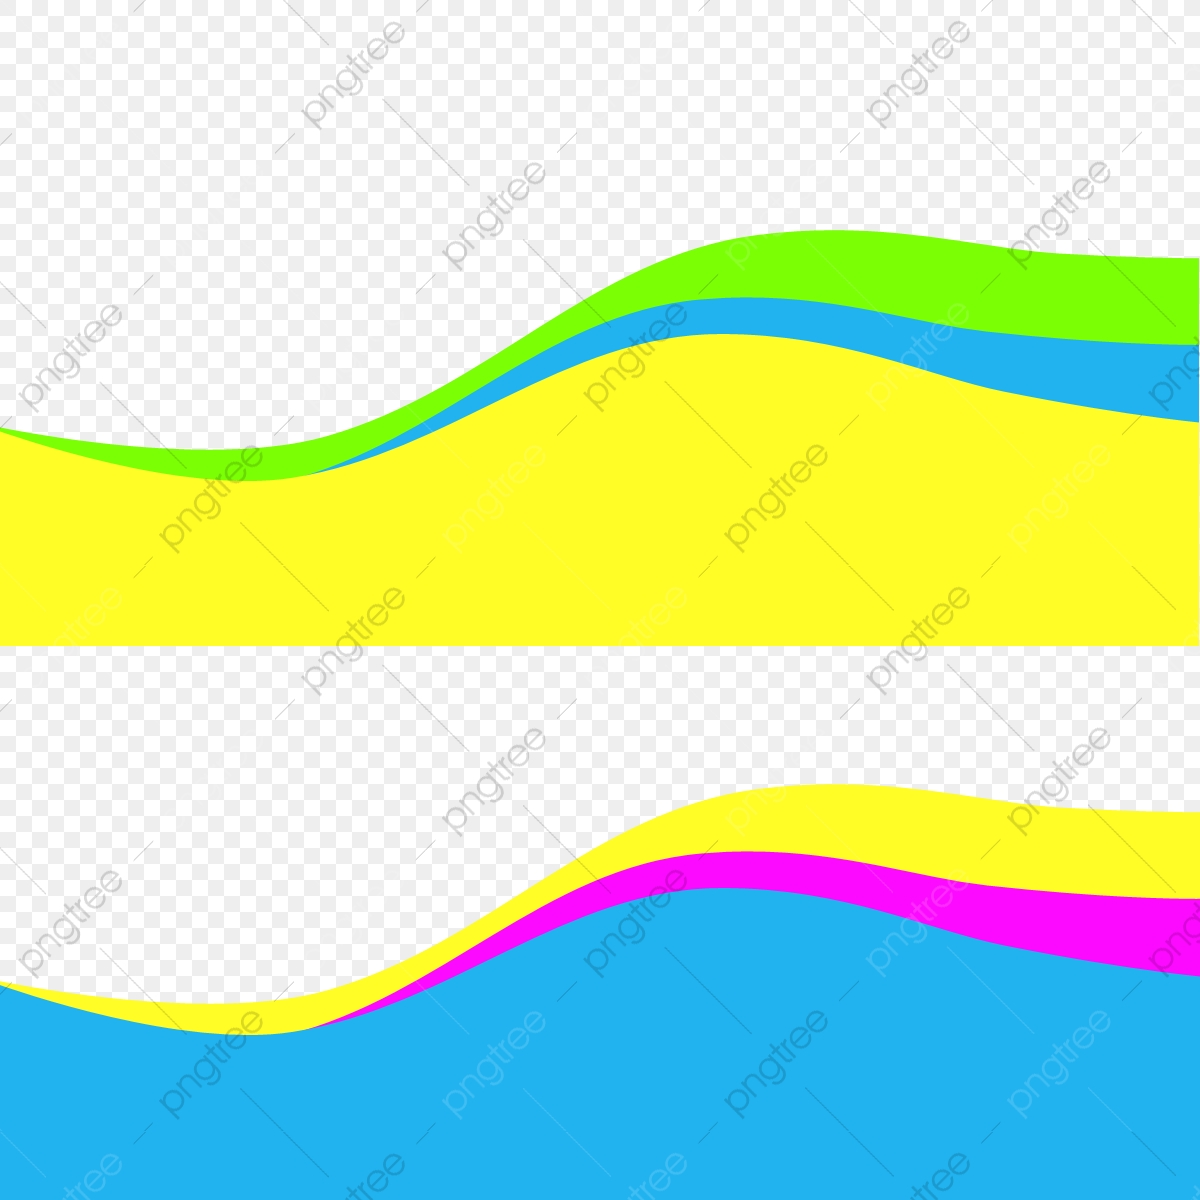 Waves clipart banner. Wave concept background abstract